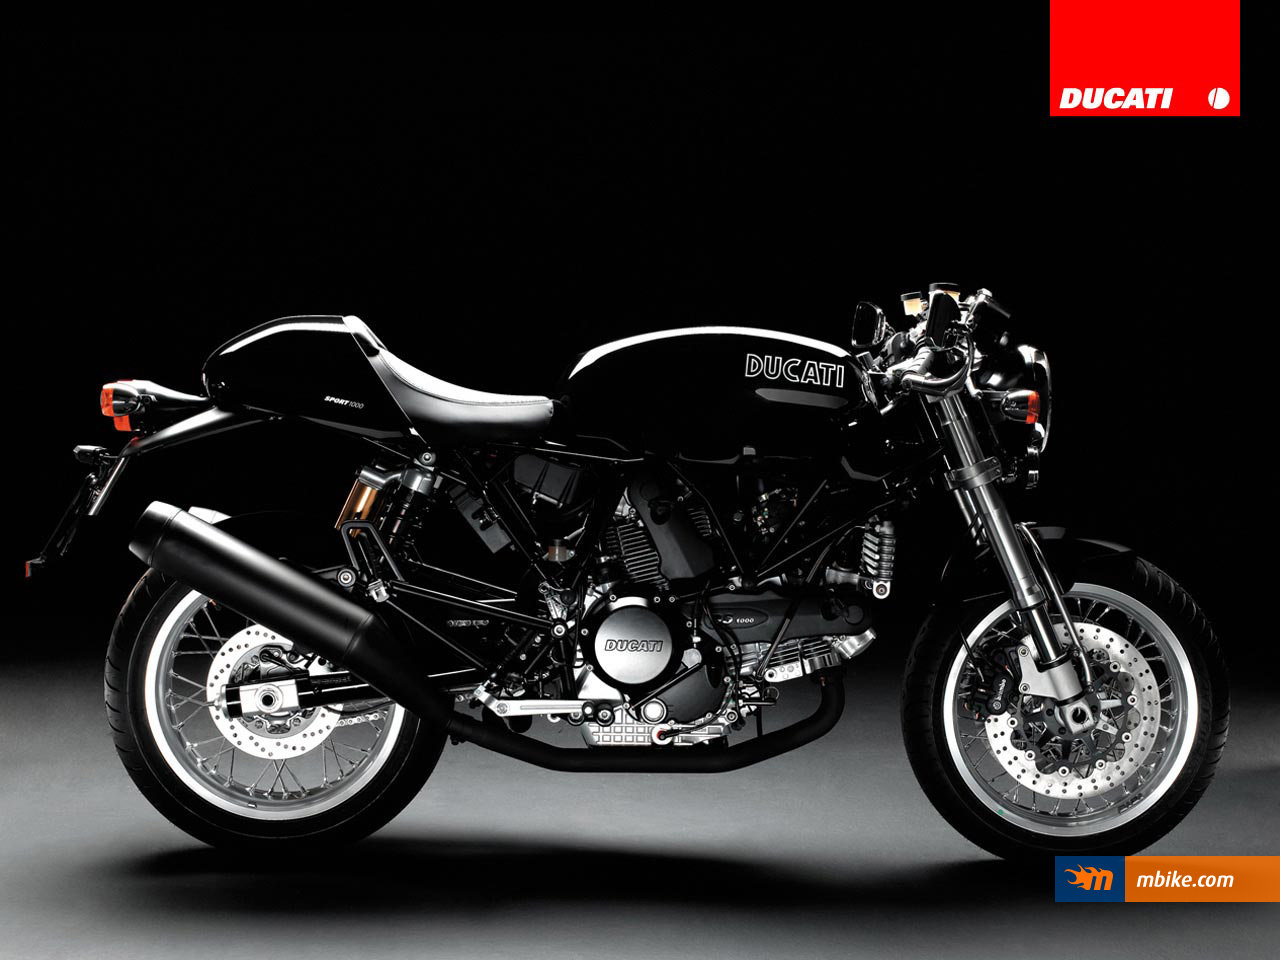 2008 ducati sportclassic gt 1000 1 wallpapers - gallery image mrfab